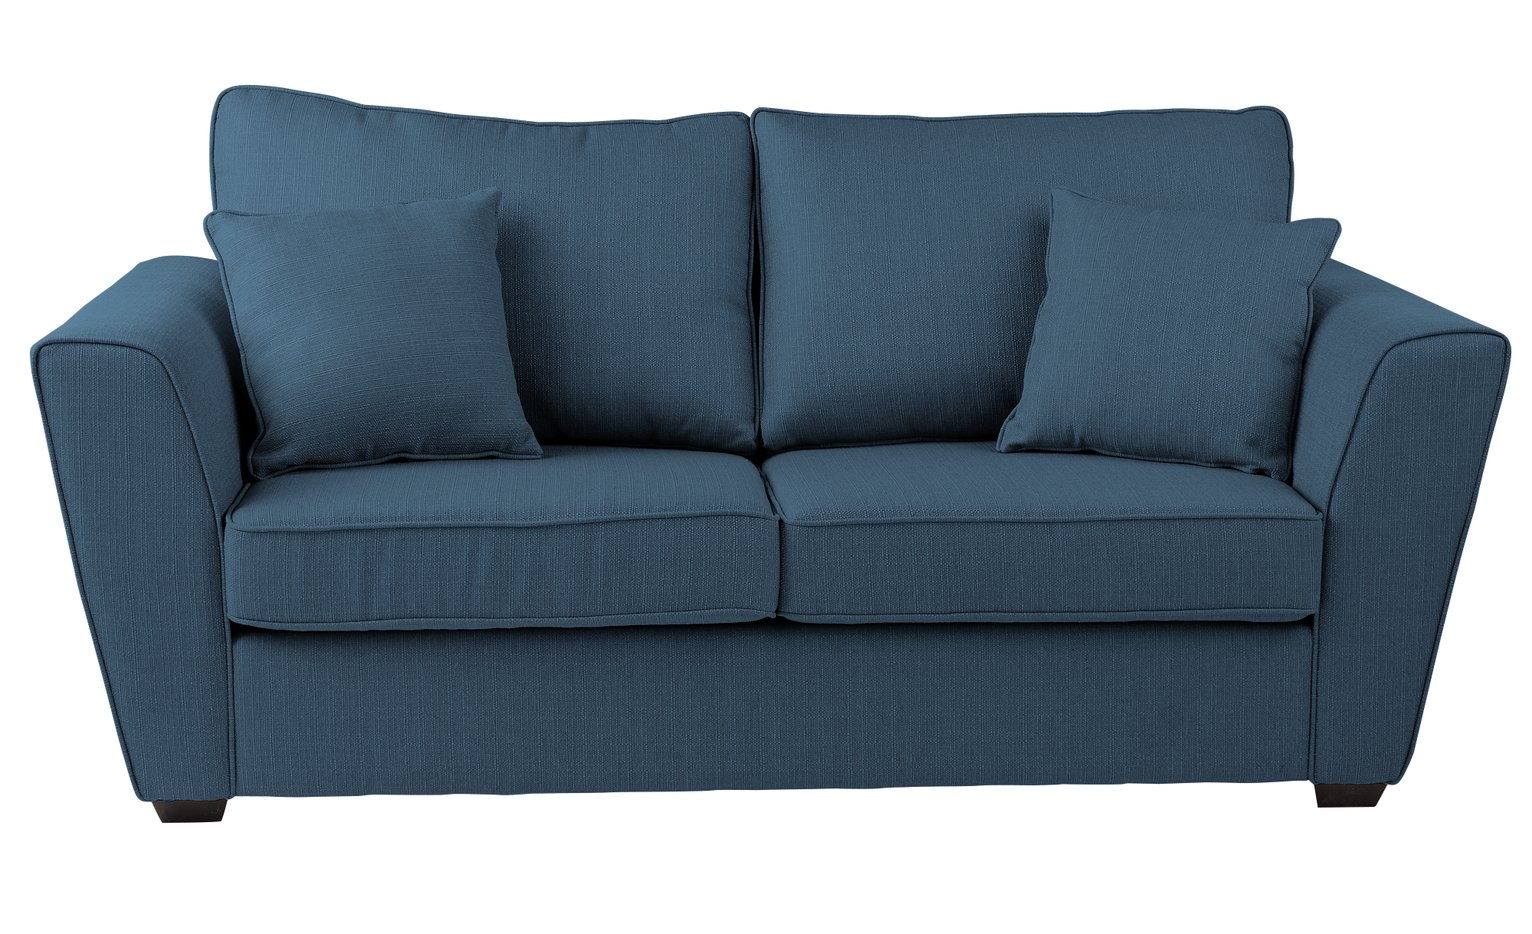 Futons Berlin Sofa Bed Blue Architecture Design